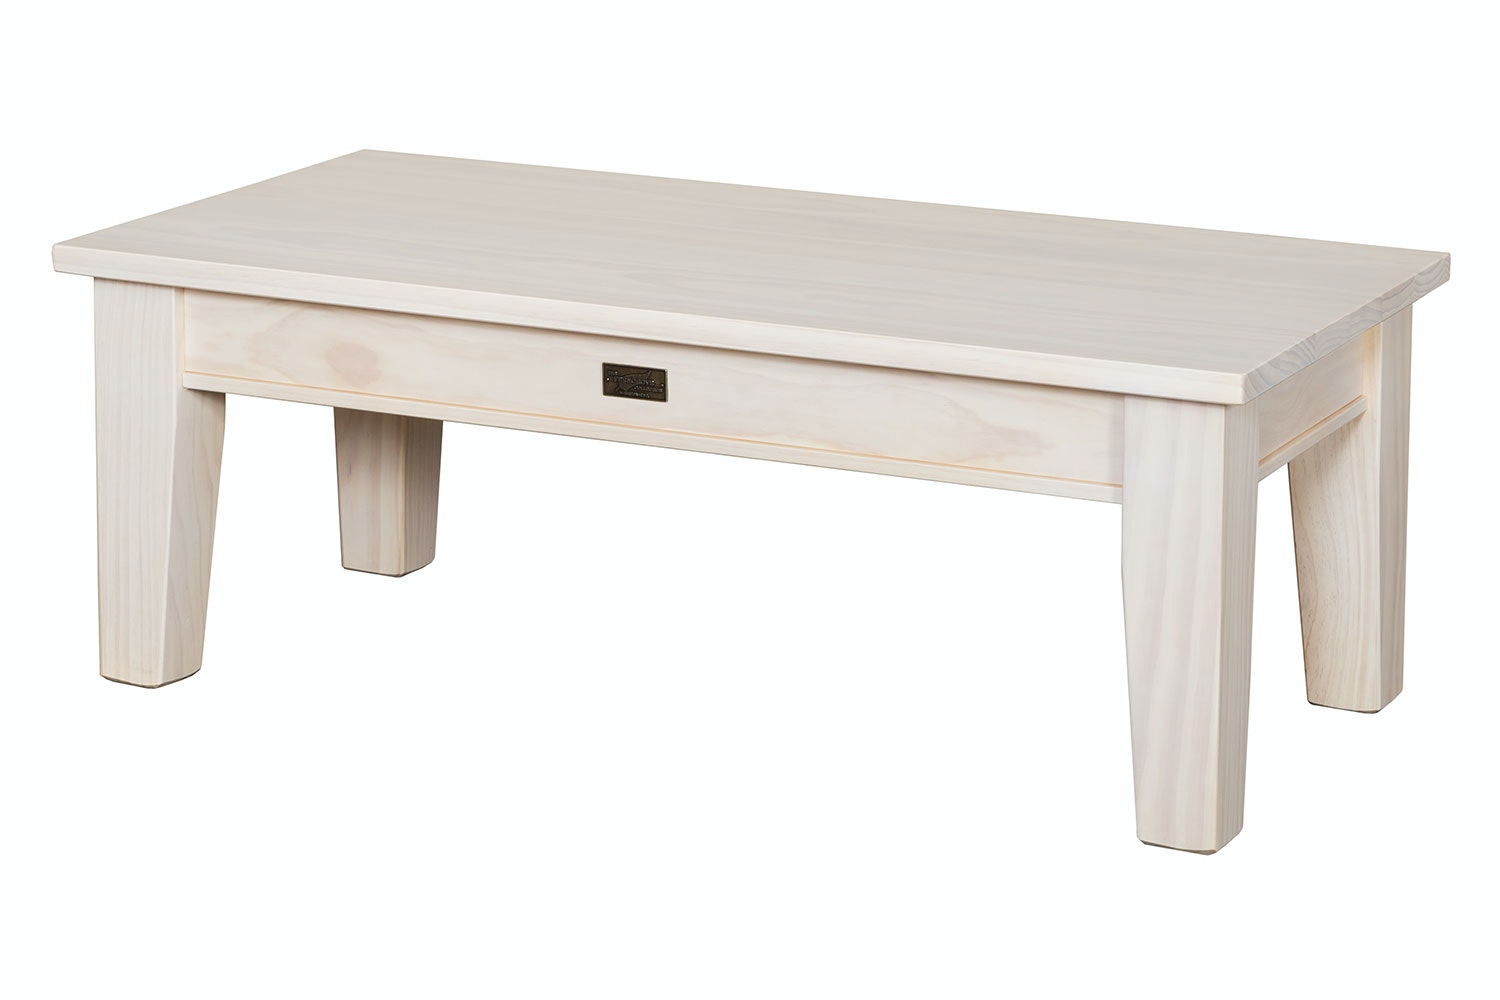 Ferngrove Coffee Table by Coastwood Furniture - white wash